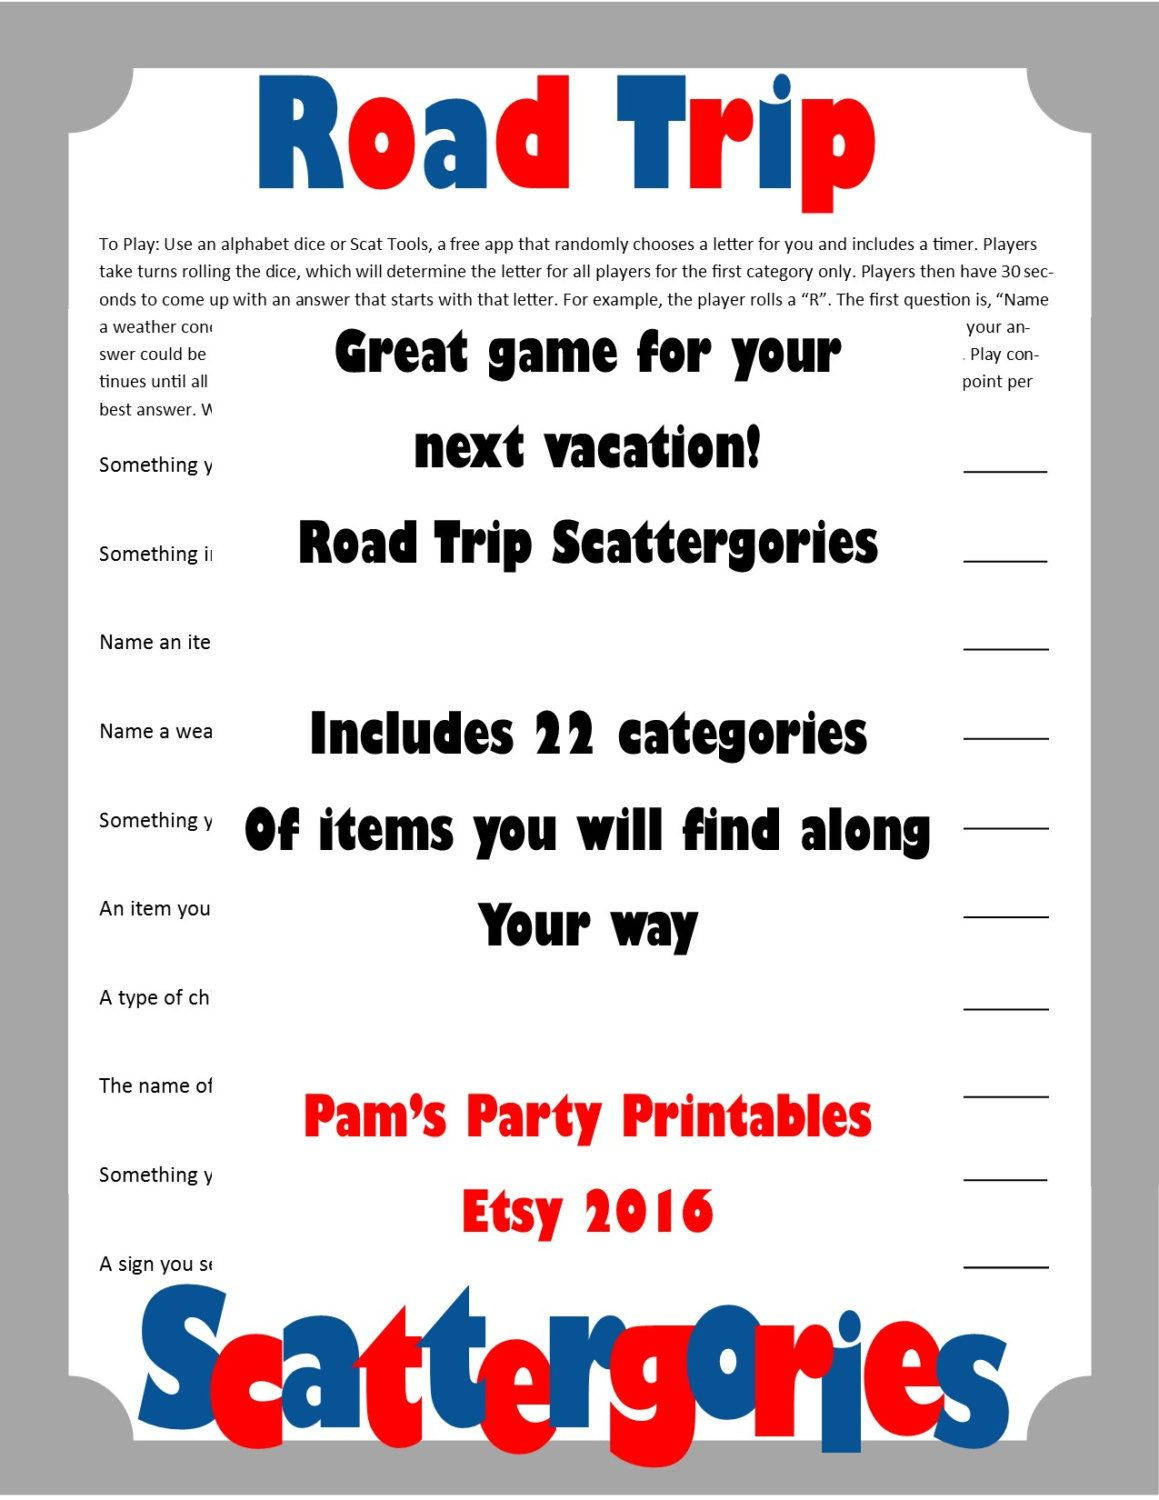 Road Trip Scattergories Printable Game